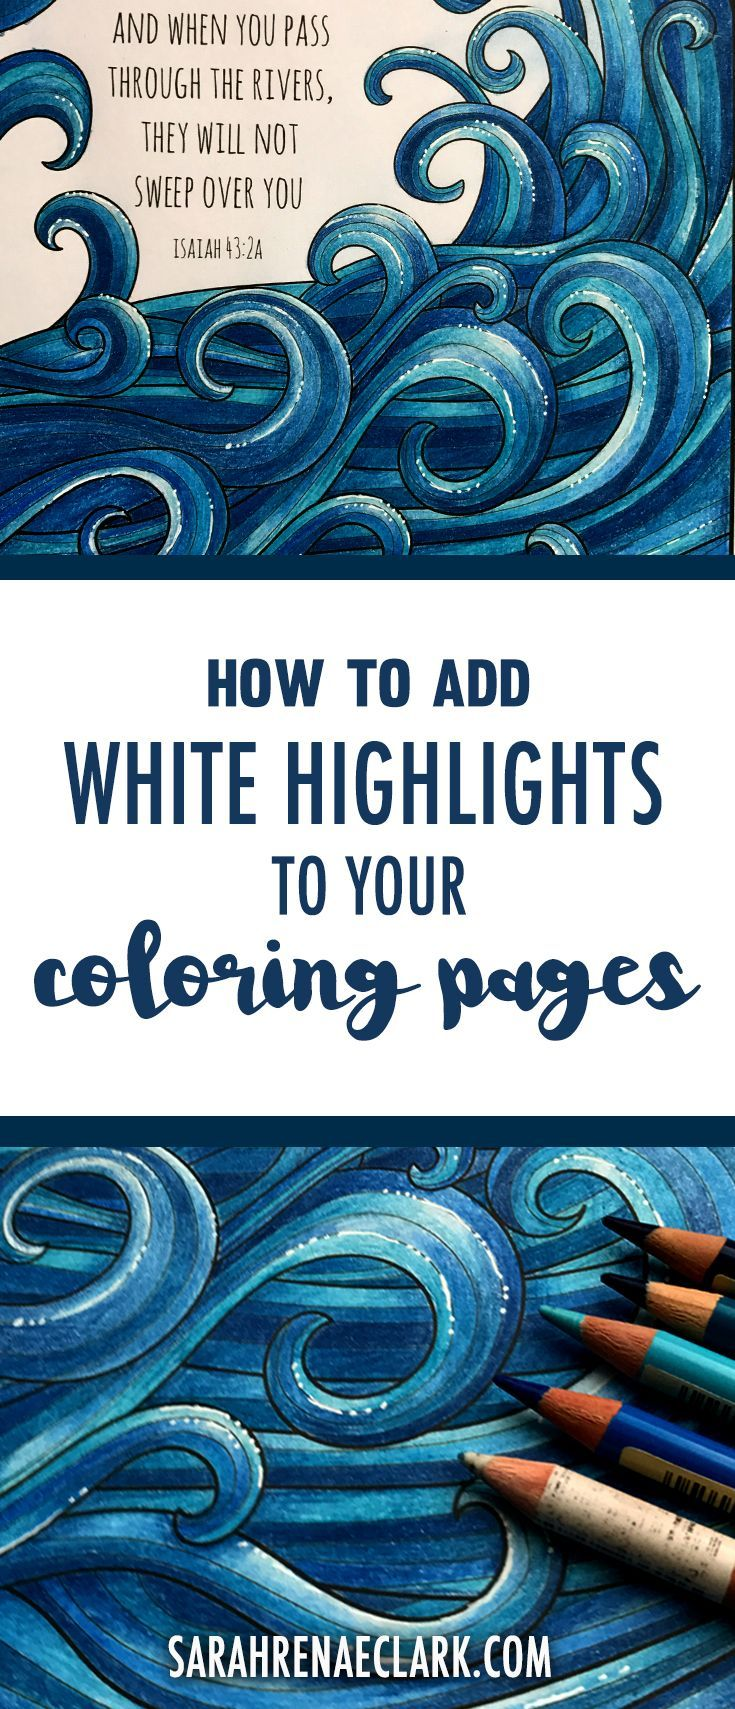 This is a super easy technique using colored pencils (or markers) and a white gel pen to create amazing highlights on any finished adult coloring page. See the full tutorial at: http://sarahrenaeclark.com/2016/how-to-add-white-highlights-to-your-coloring-pages/